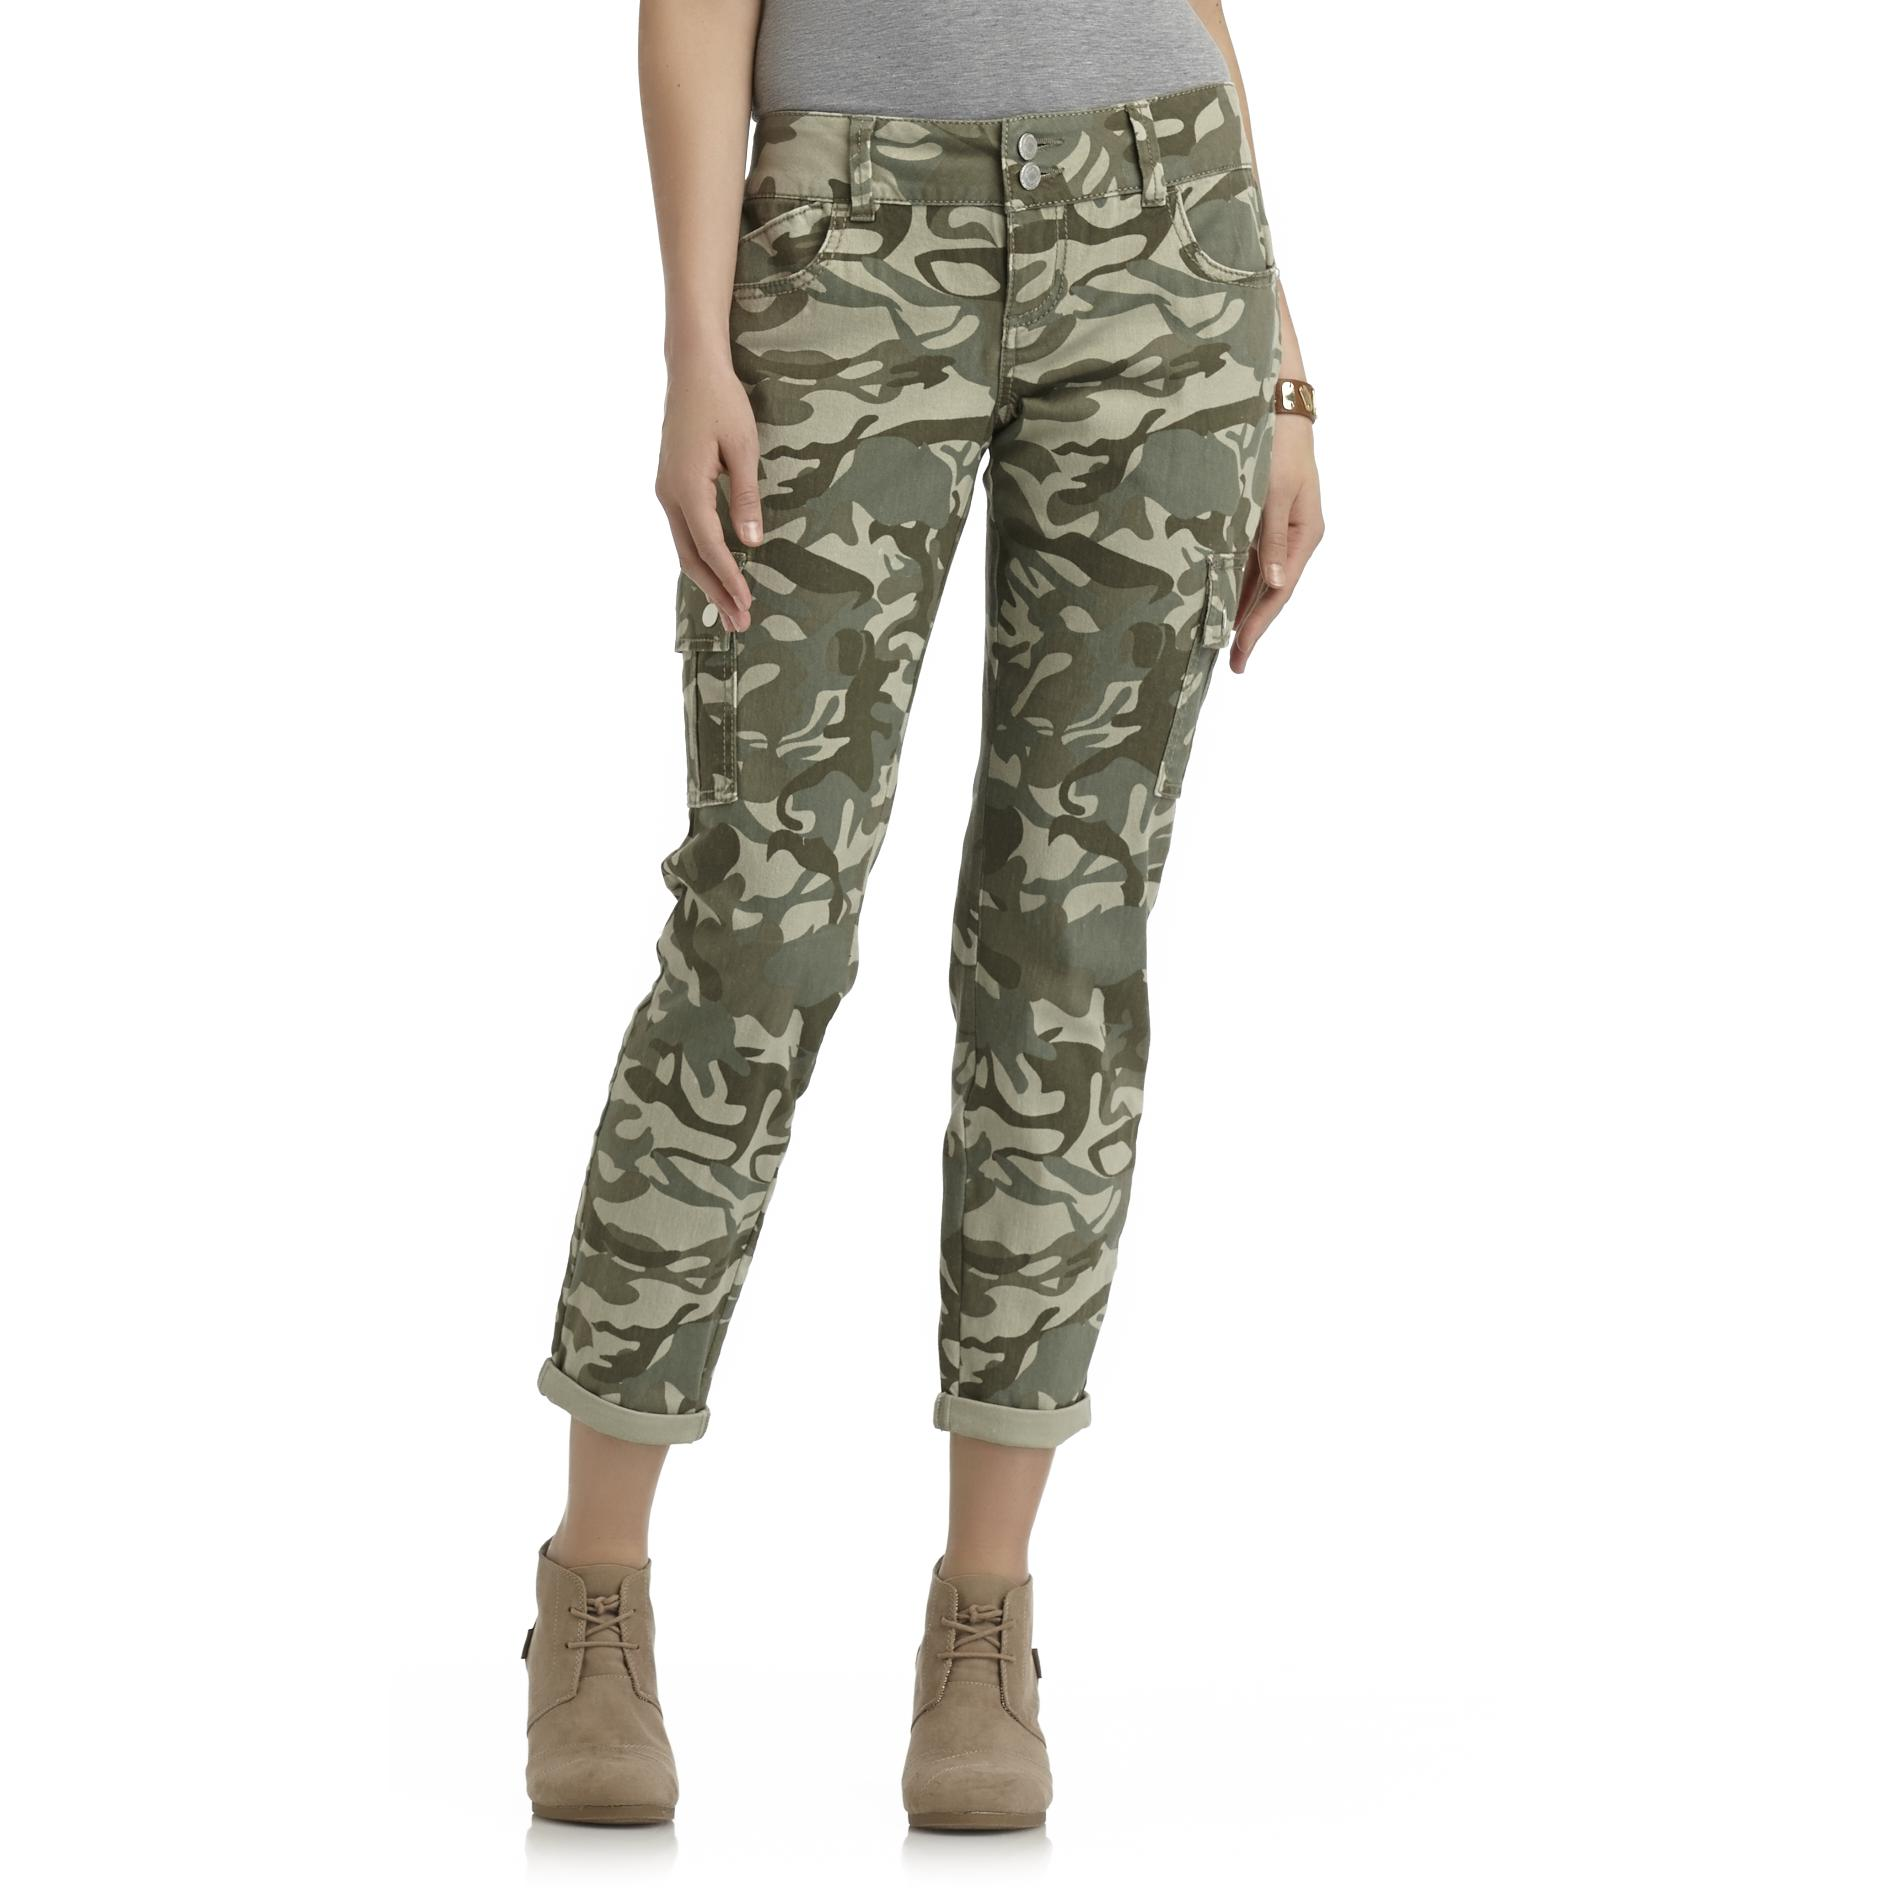 Bongo Junior's Cropped Skinny Cargo Pants - Camouflage at Sears.com